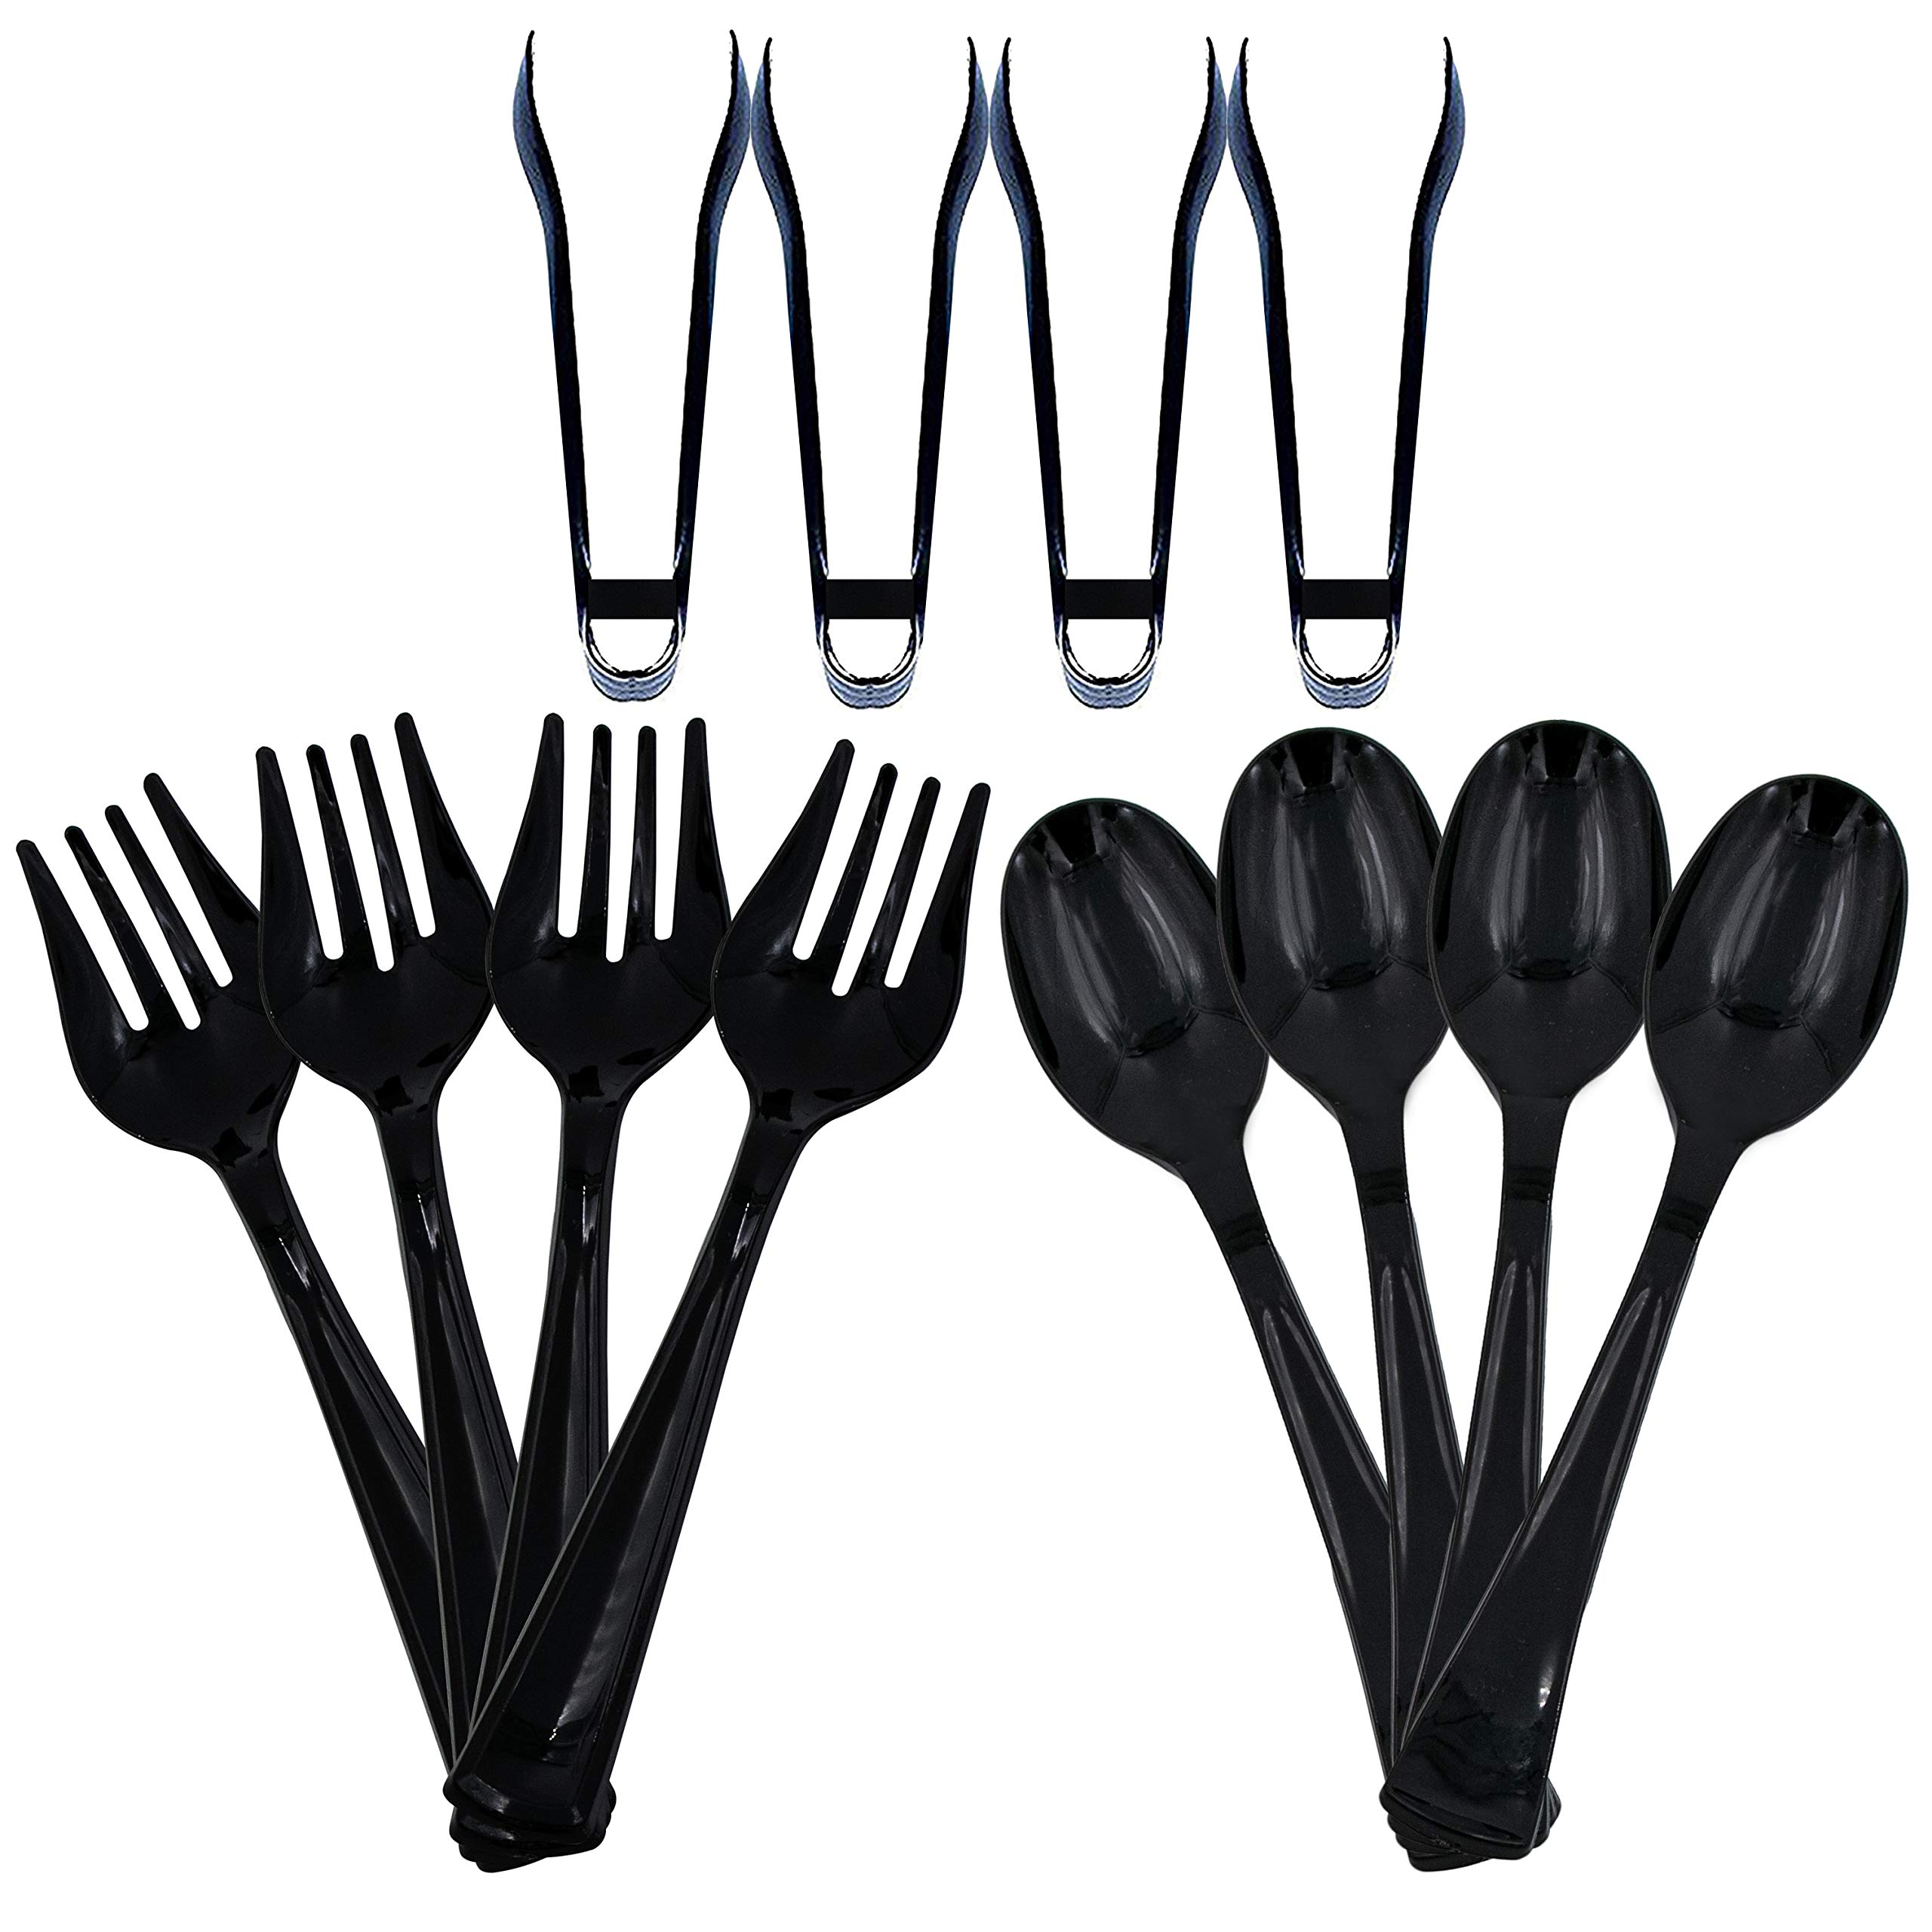 Upper Midland Products Disposable Plastic Serving Utensils Black - Set of 12 - Four 10'' Spoons, Four 10'' Forks, and Four 6'' Tongs by Upper Midland Products